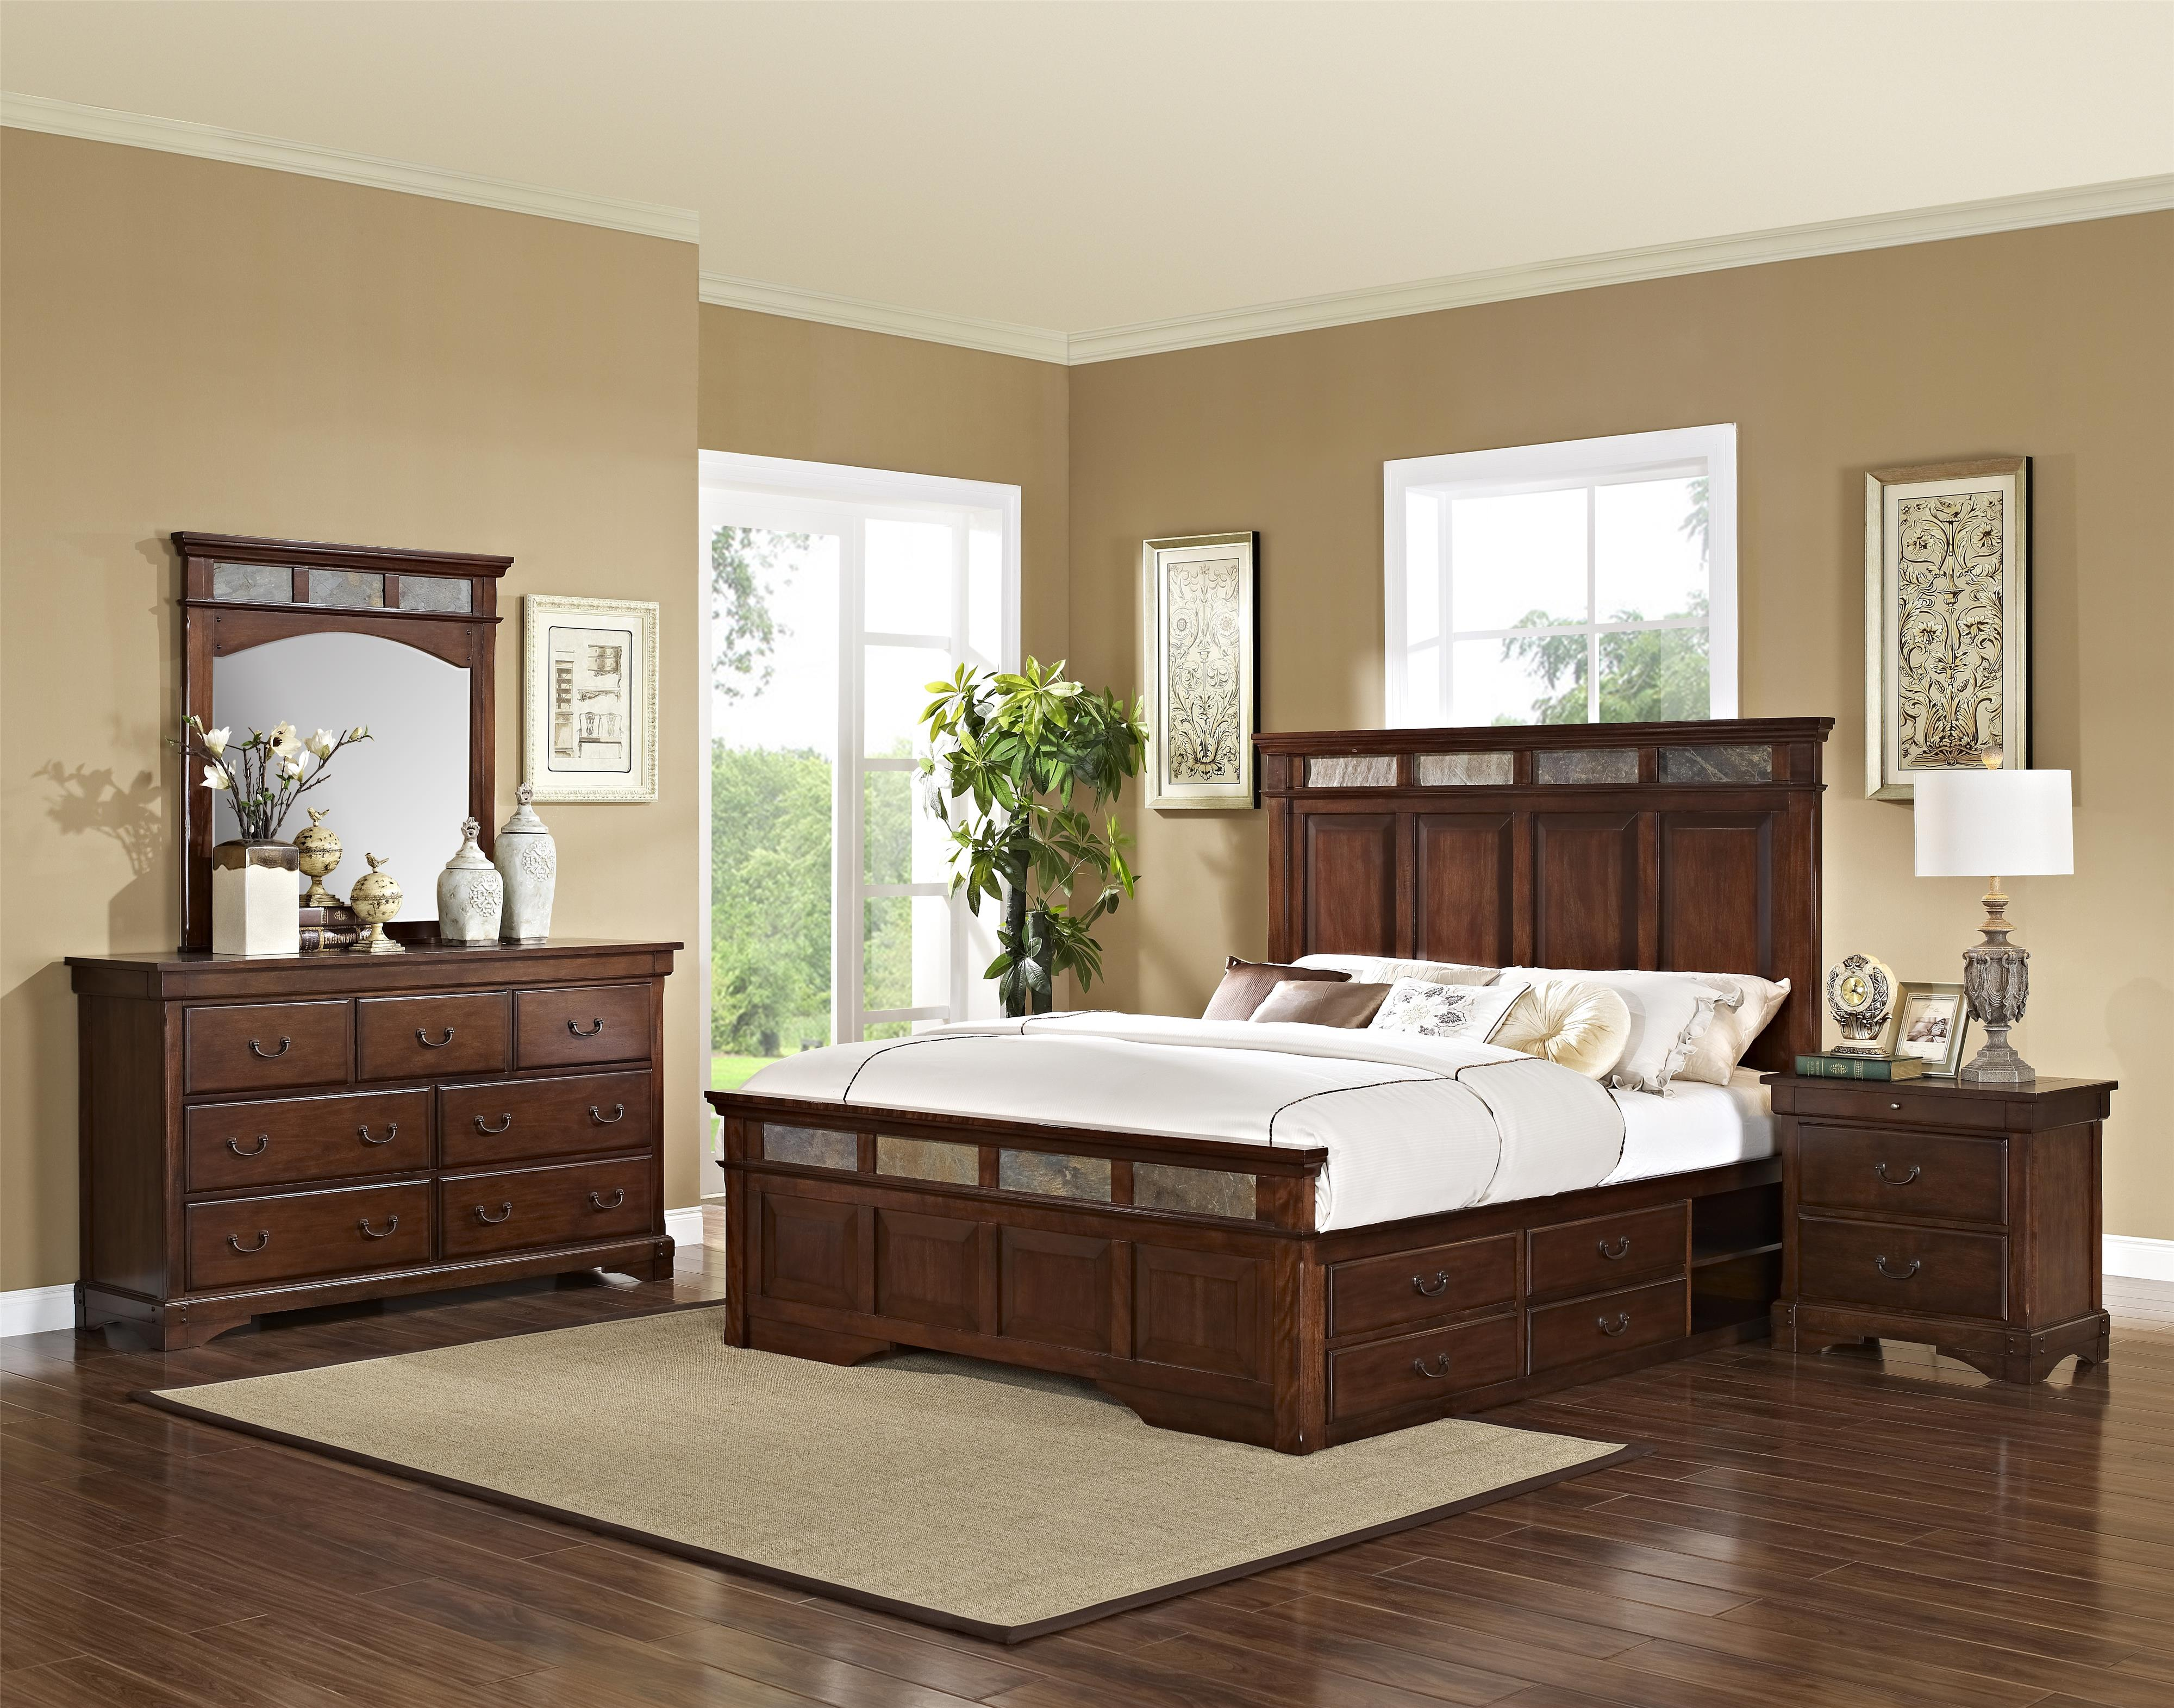 New Classic Madera  King Bedroom Group - Item Number: 00-455 K Bedroom Group 2